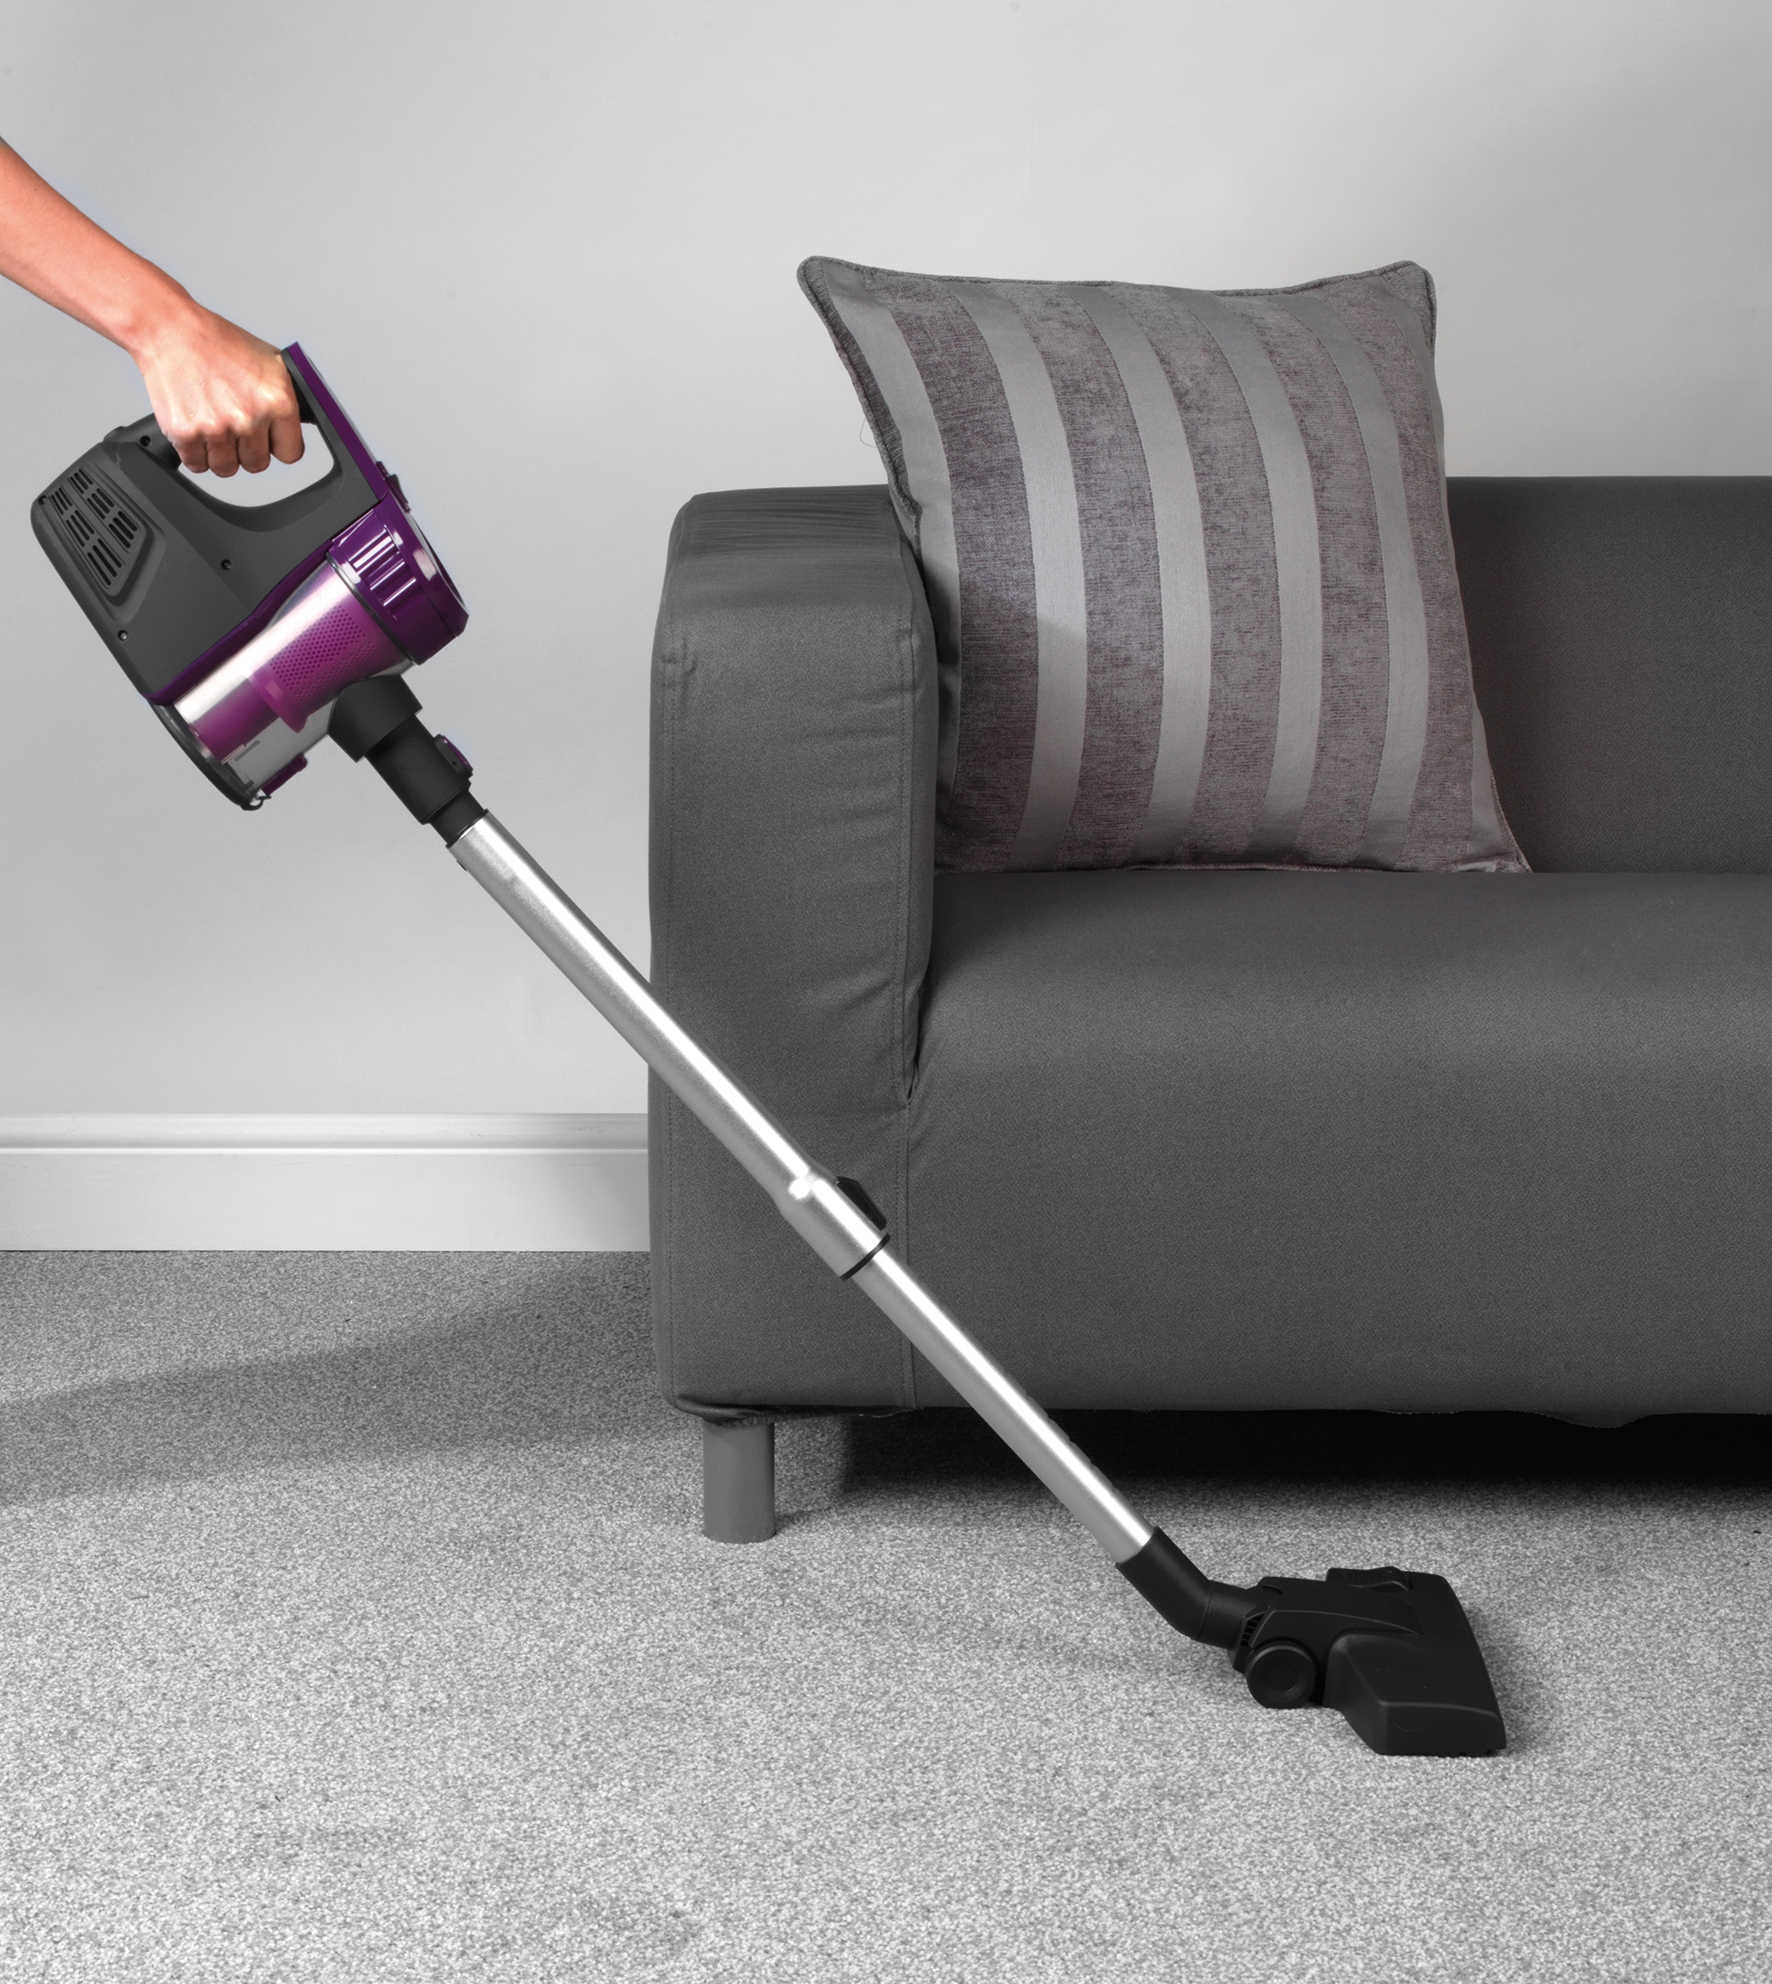 Product: Beldray 22.2v Cordless Quick Vac Lite 2in1 Vacuum Cleaner  Price: £55.00 - available exclusively at  Wilko   Rating: ★★★★★ 5/5